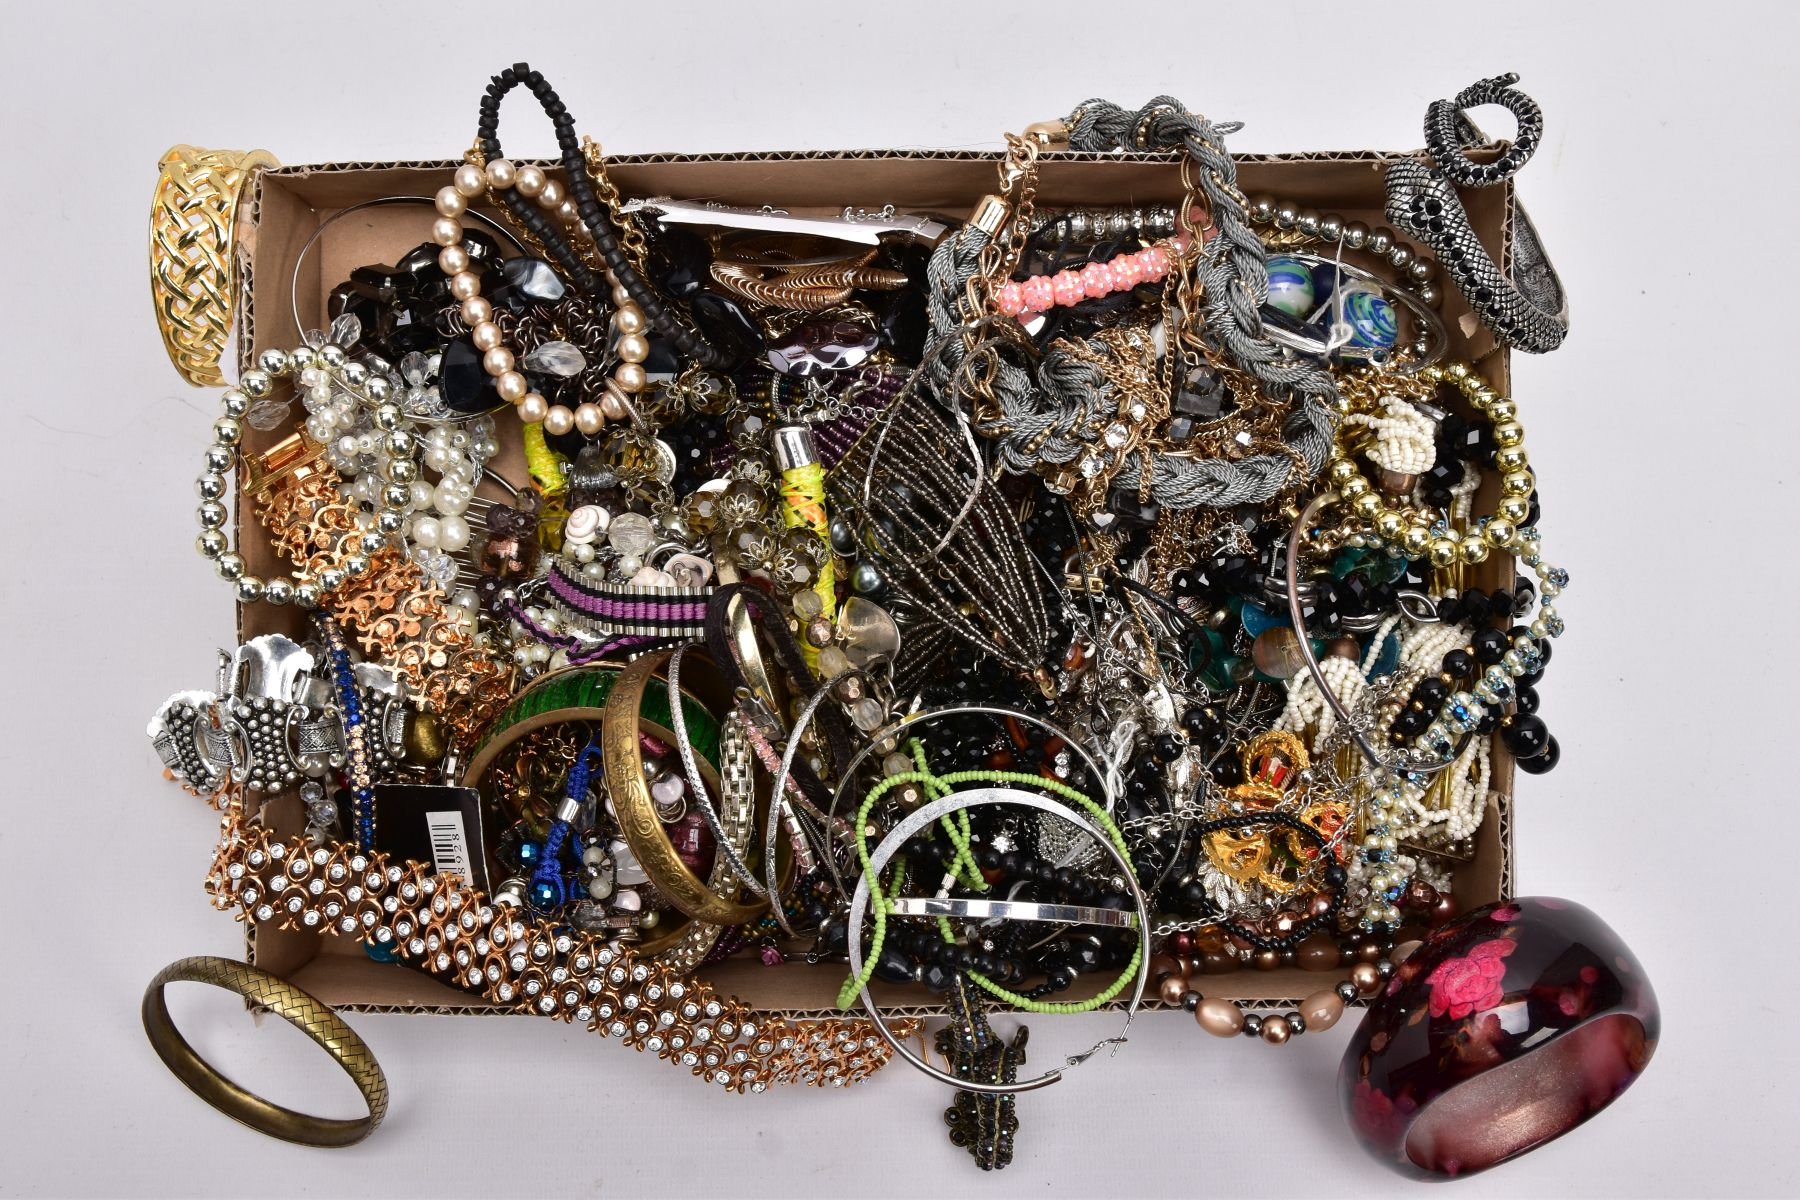 A TRAY OF ASSORTED COSTUME JEWELLERY, to include yellow and white metal necklaces of various